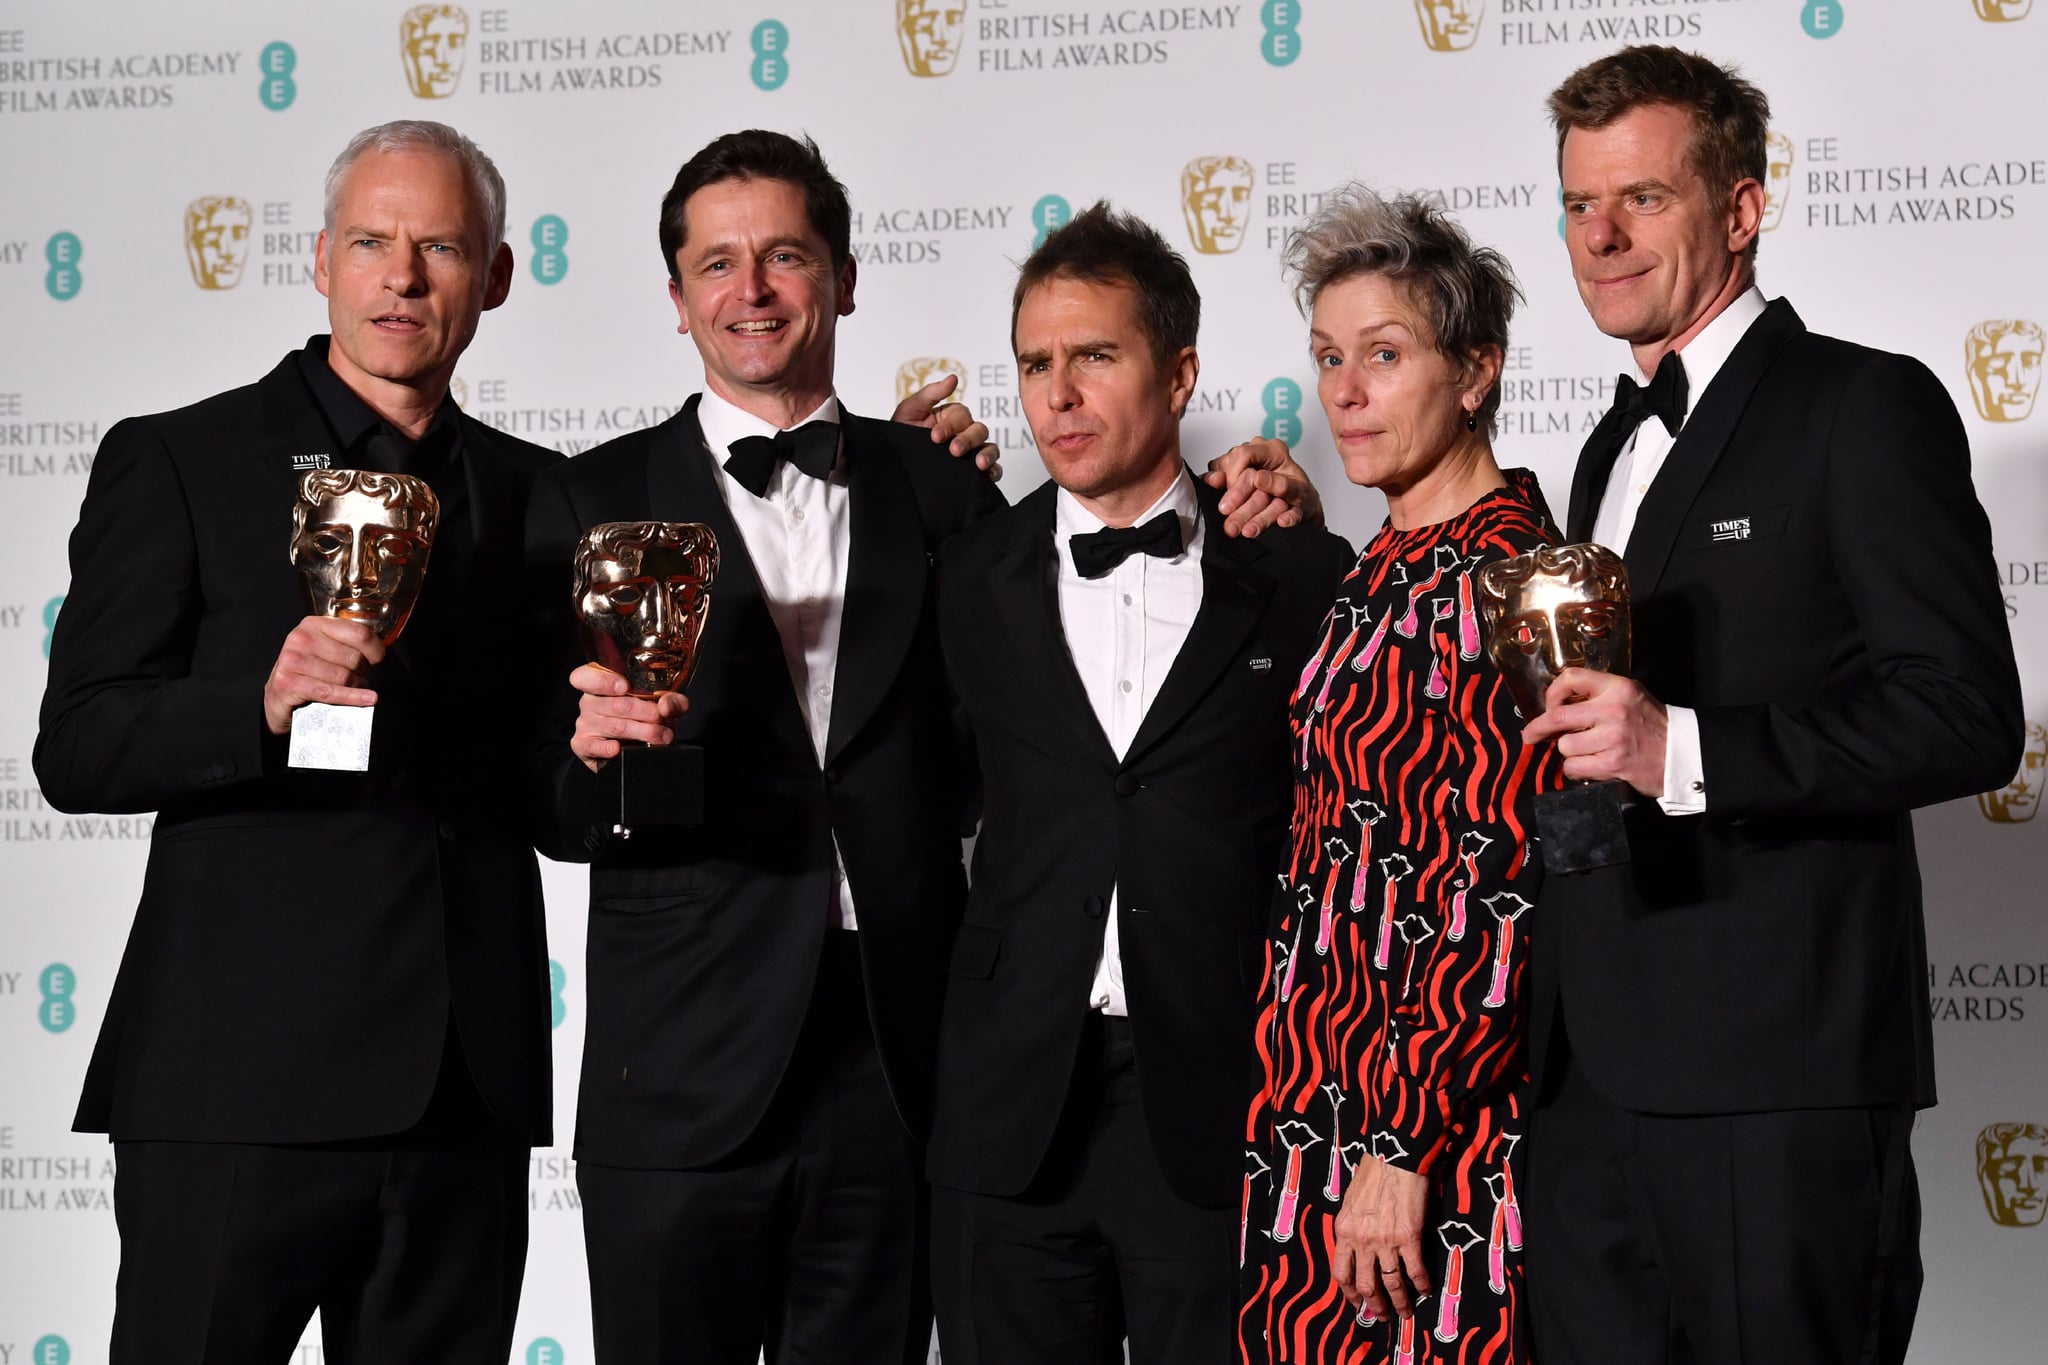 TOPSHOT - British-Irish filmmaker Martin McDonagh (L), producer Peter Czernin (2L), supporting actor award winner US actor Sam Rockwell, and British producer Graham Broadbent (R) pose with leading actress award winner US actress Frances McDormand (2R) after receiving the award for Best Film for 'Three Billboards Outside Ebbing Missouri' at the BAFTA British Academy Film Awards at the Royal Albert Hall in London on February 18, 2018. (Photo by Ben STANSALL / AFP)        (Photo credit should read BEN STANSALL/AFP/Getty Images)